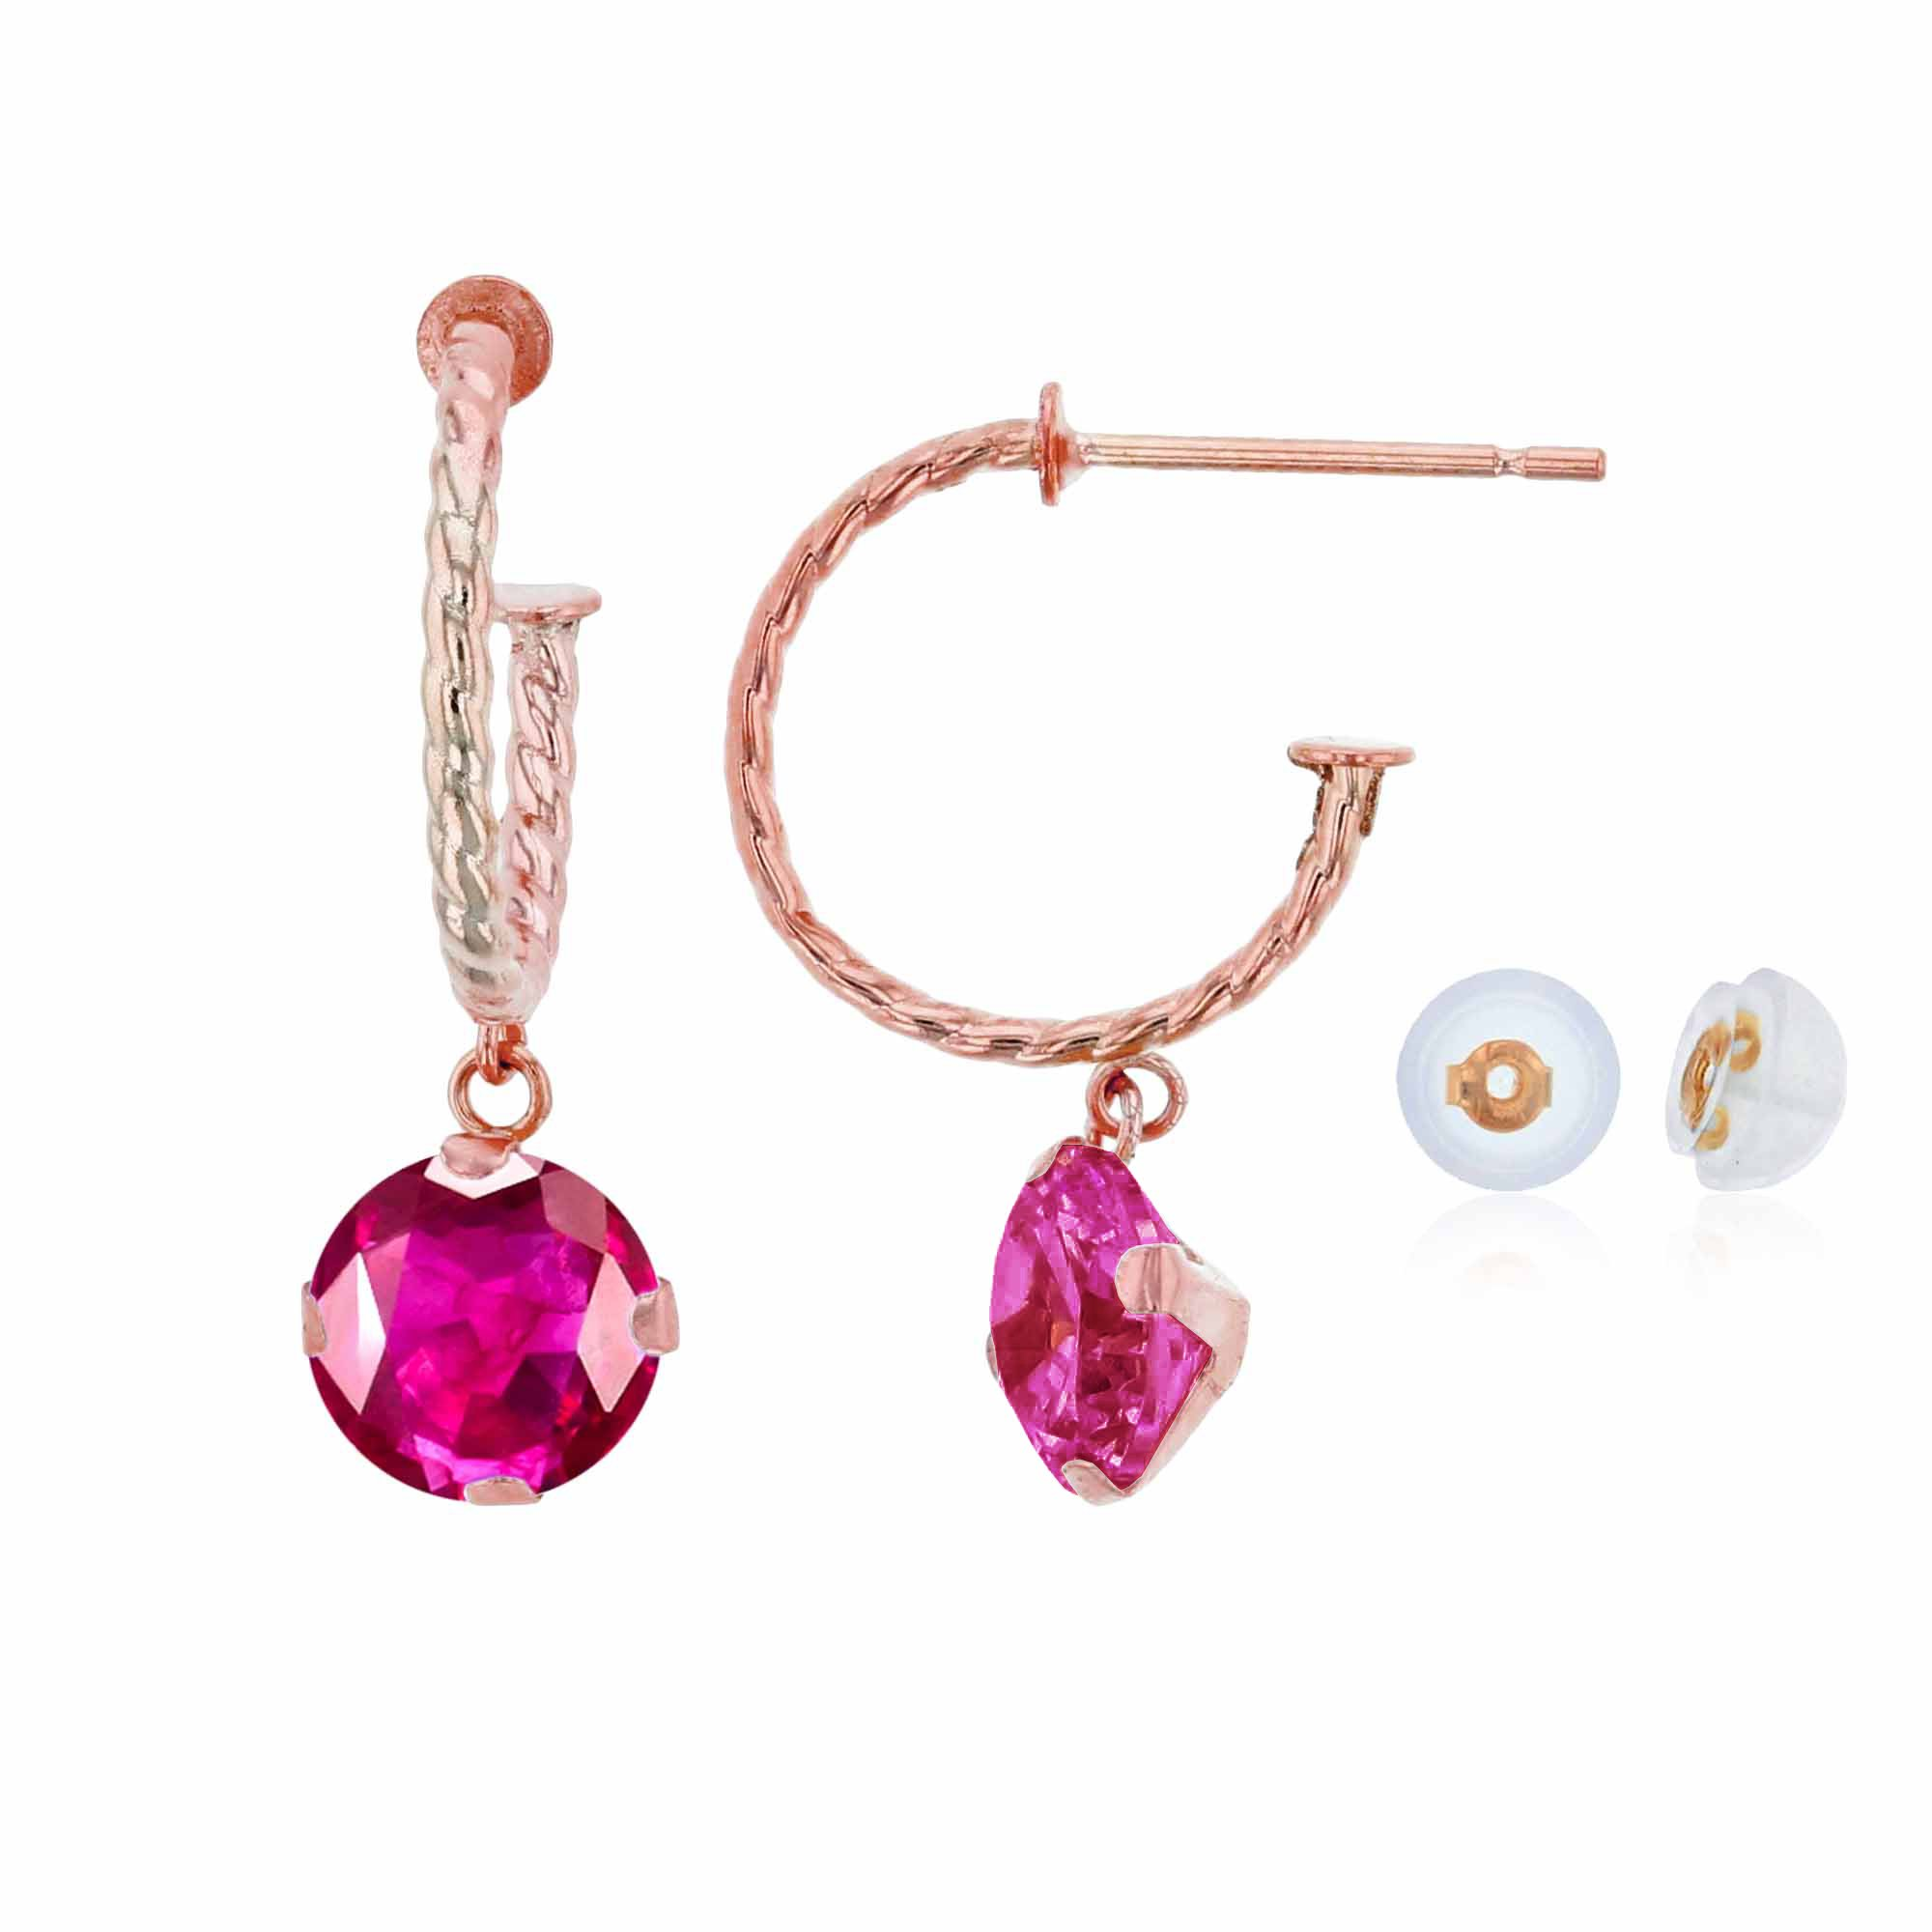 10K Rose Gold 12mm Rope Half-Hoop with 6mm Round Glass Filled Ruby Martini Drop Earring with Silicone Back